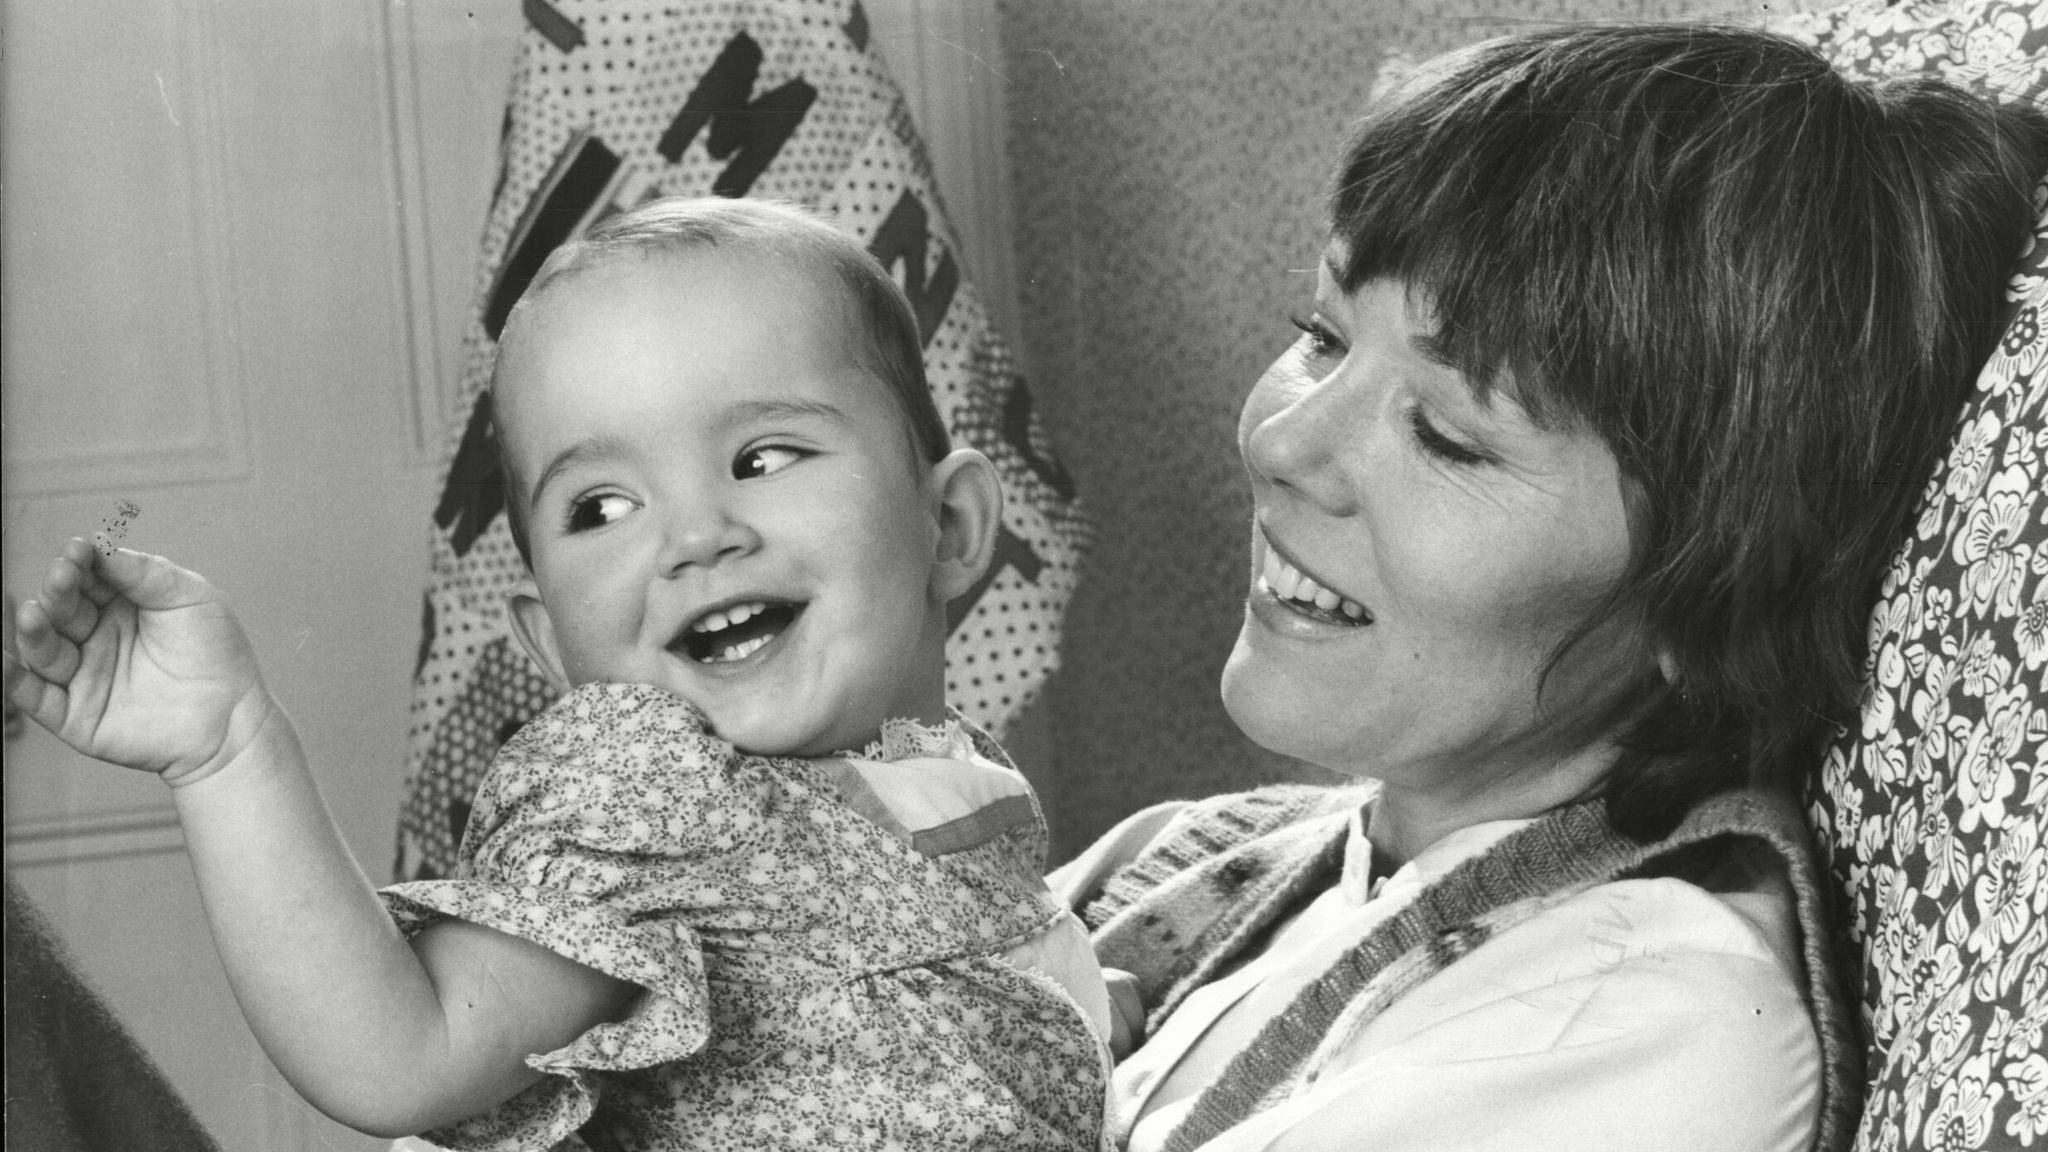 Diana Rigg Actress With Daughter Rachel Stirling. Pic: Chris Barham/ANL/Shutterstock